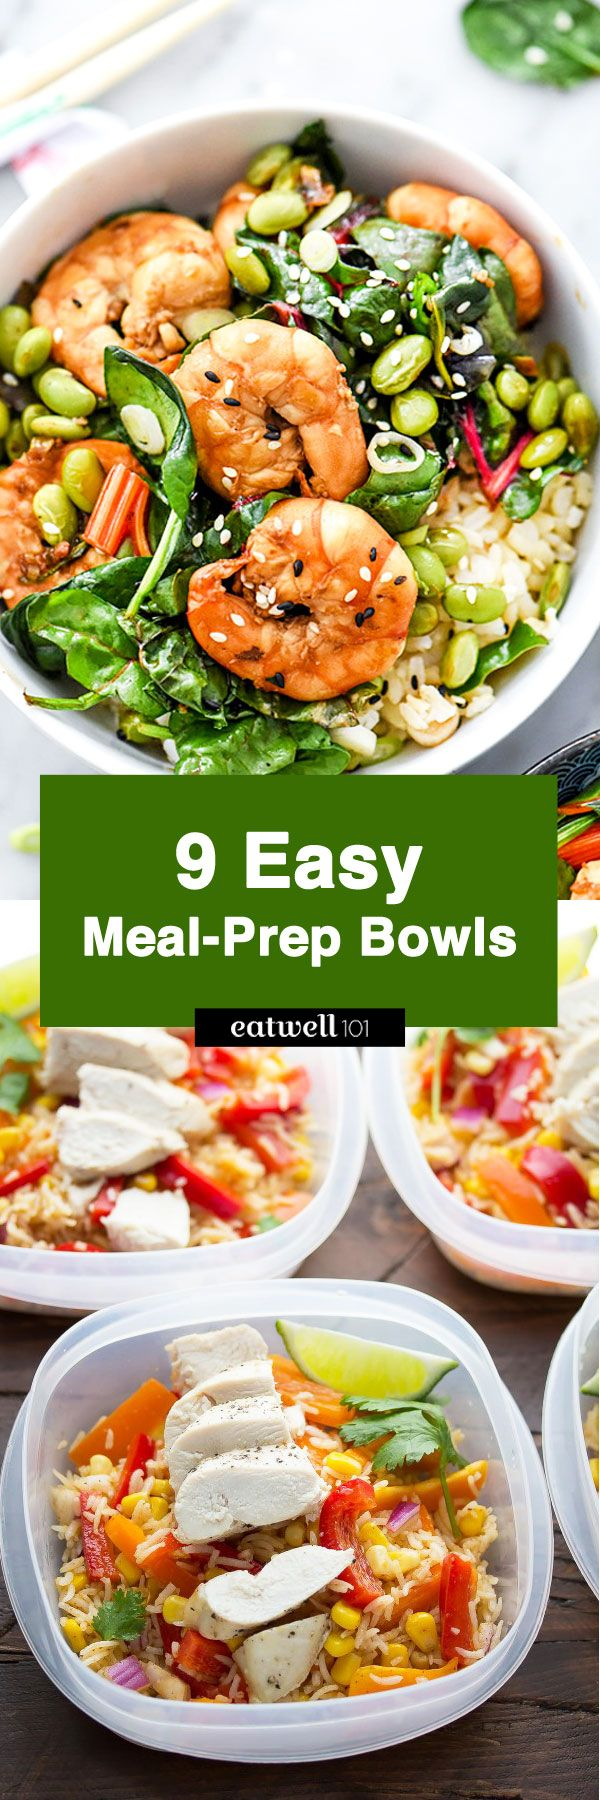 Eat healthy all week at home, at the office or on campus! We've rounded up 9 easy meal-prep bowl recipes here to inspire you to branch out of your lunchtime rut. This is meal prep at its fine…